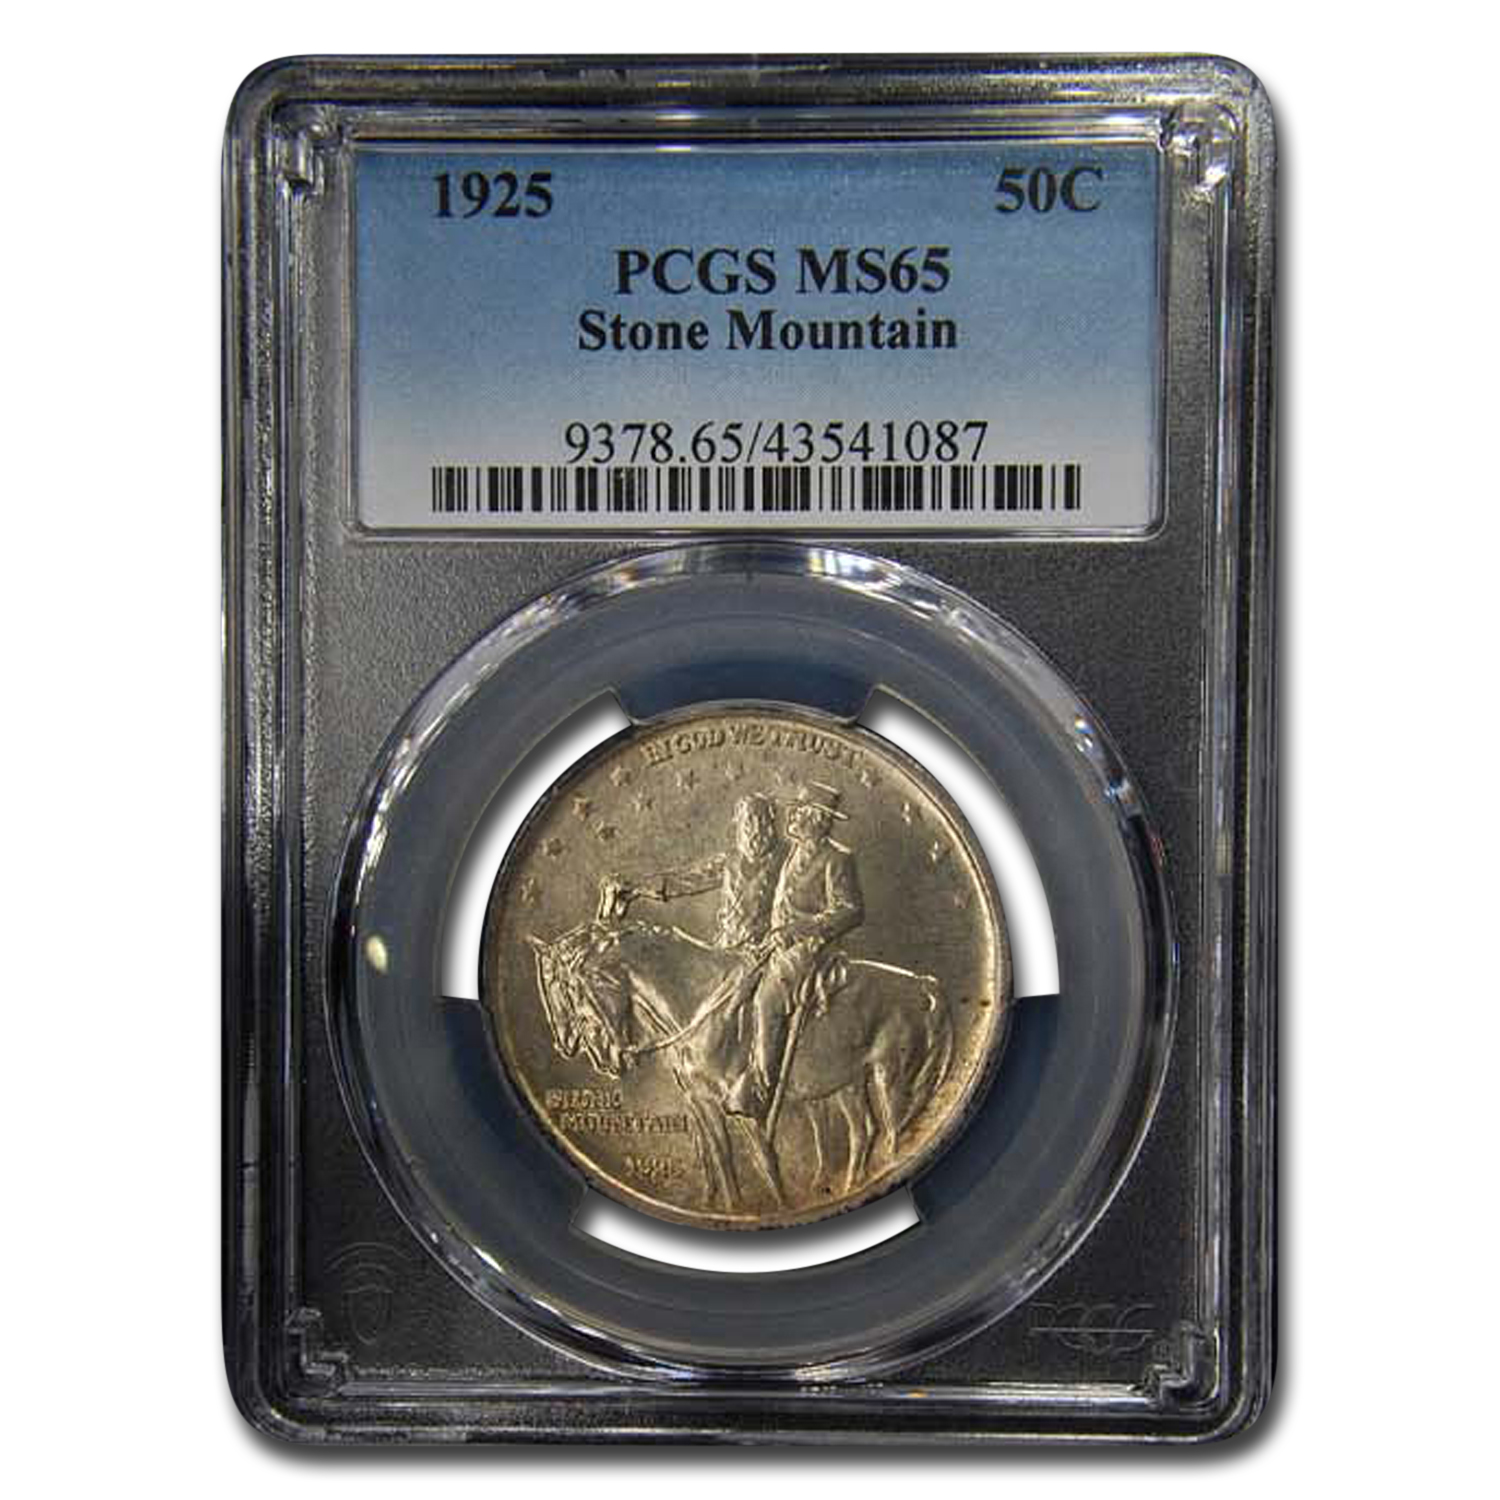 1925 Stone Mountain Memorial Half Dollar MS-65 PCGS (Toned)